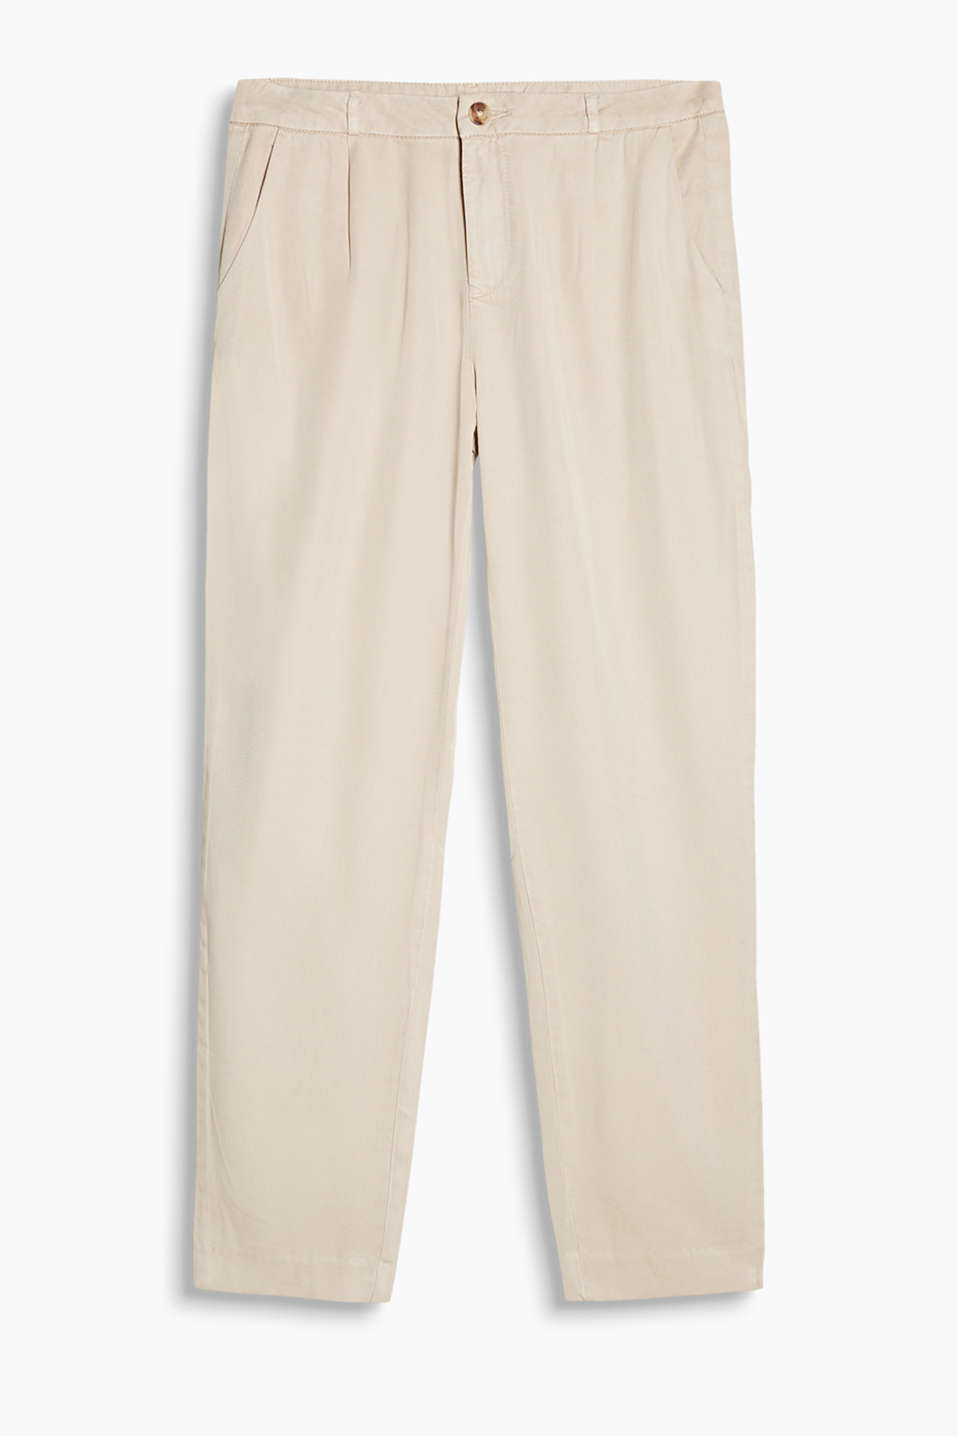 Essential: mega comfy chinos made of fluid fabric